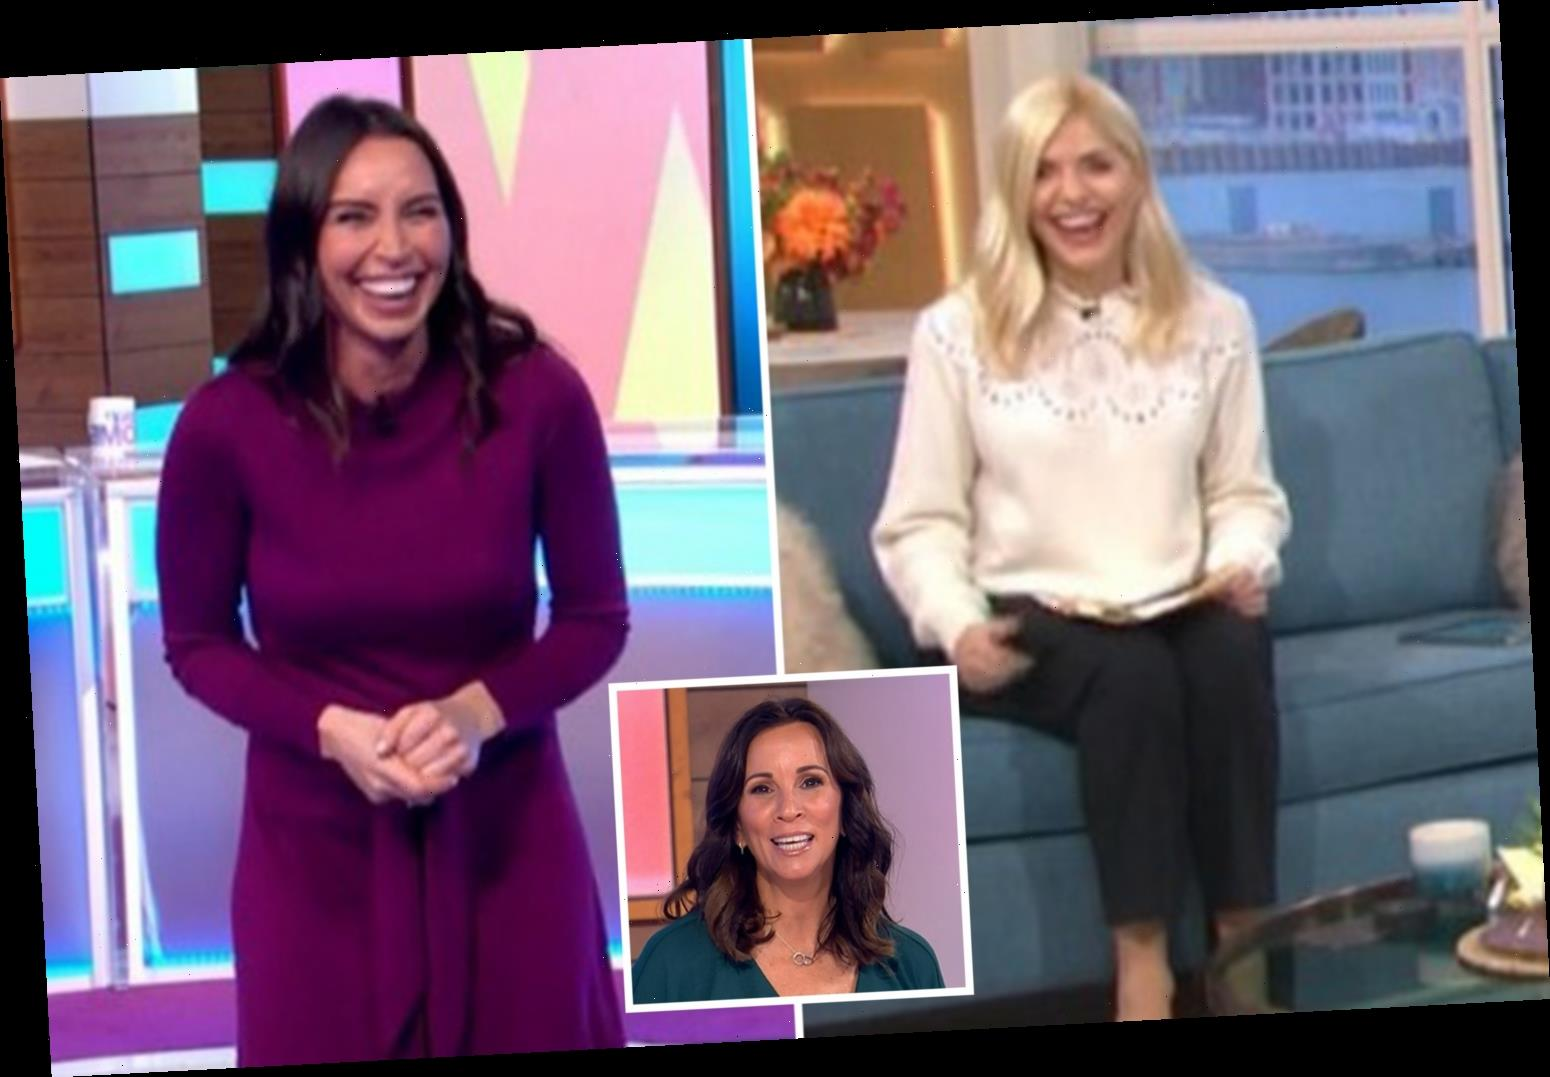 This Morning's Holly Willoughby apologises after awkwardly confusing Christine Lampard for Andrea McLean on Loose Women